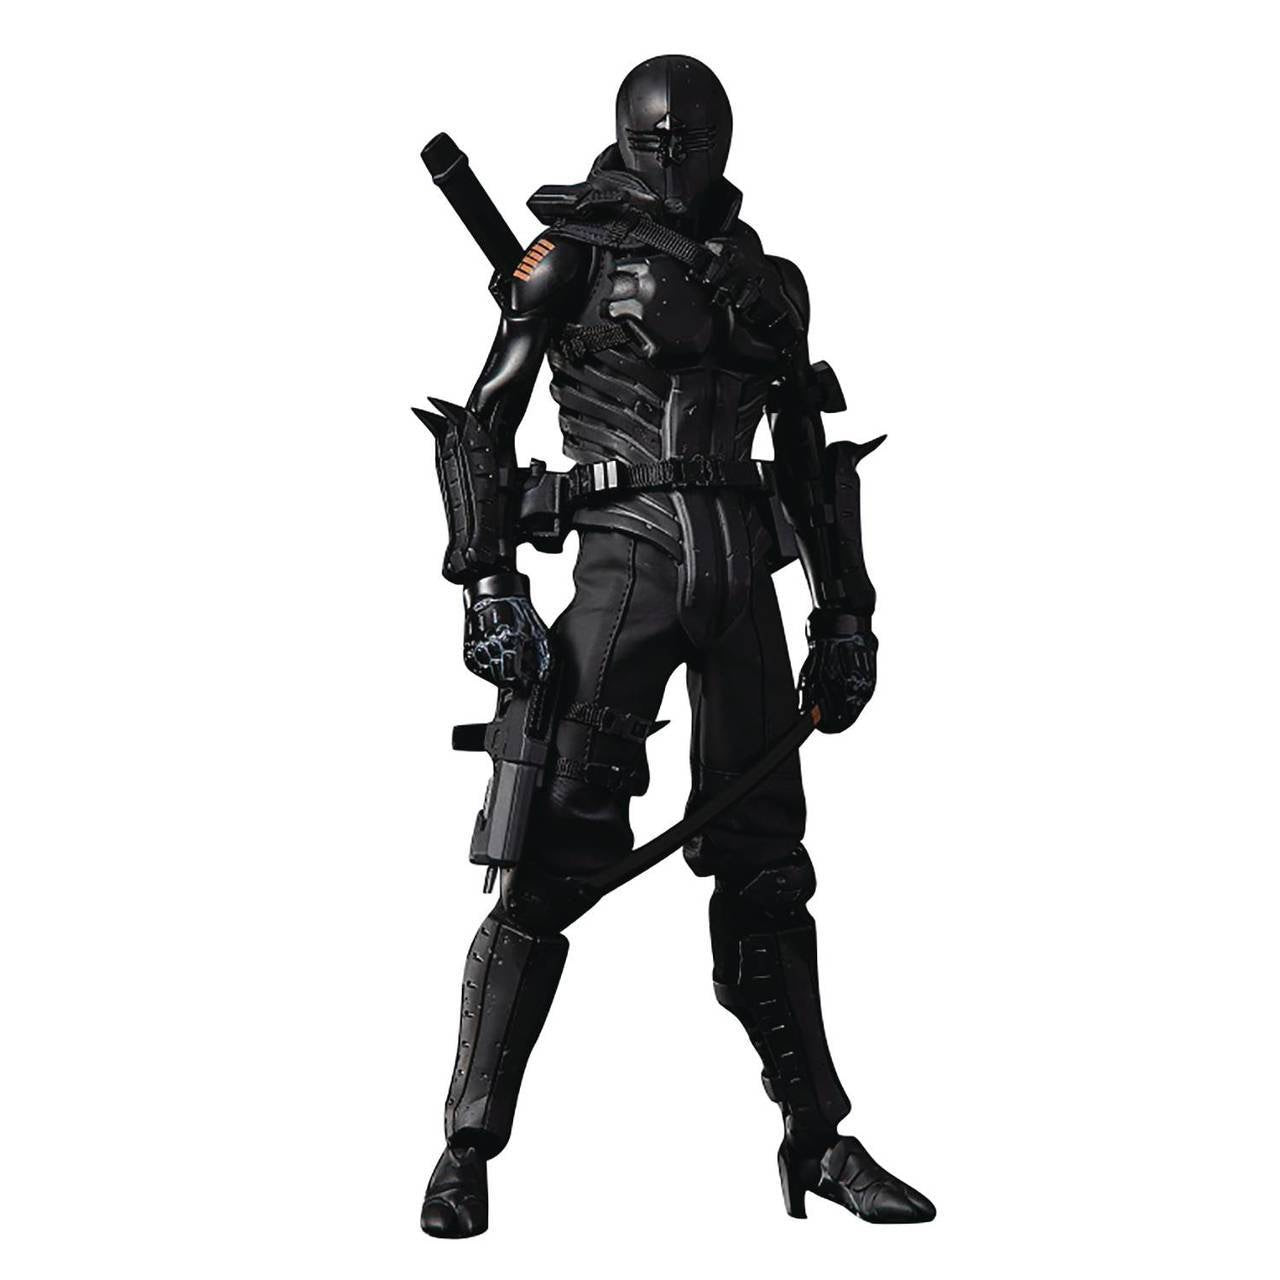 Image of G.I. Joe x TOA Heavy Industries Snake Eyes 1:6 Scale Action Figure - JANUARY 2021